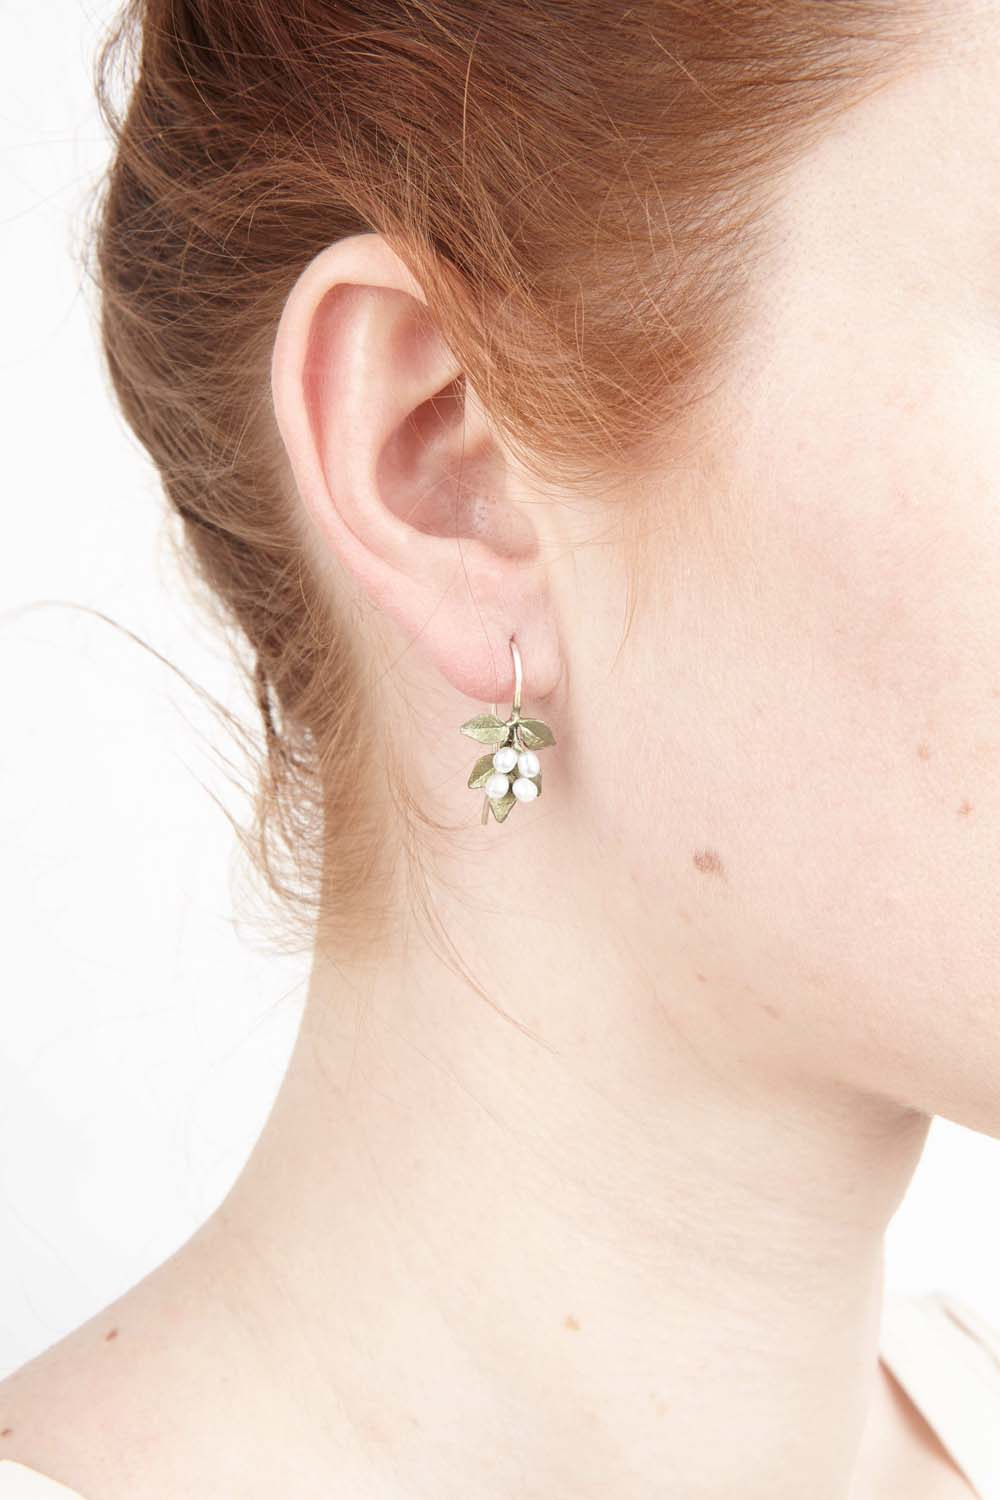 Myrtle Earrings - Wire